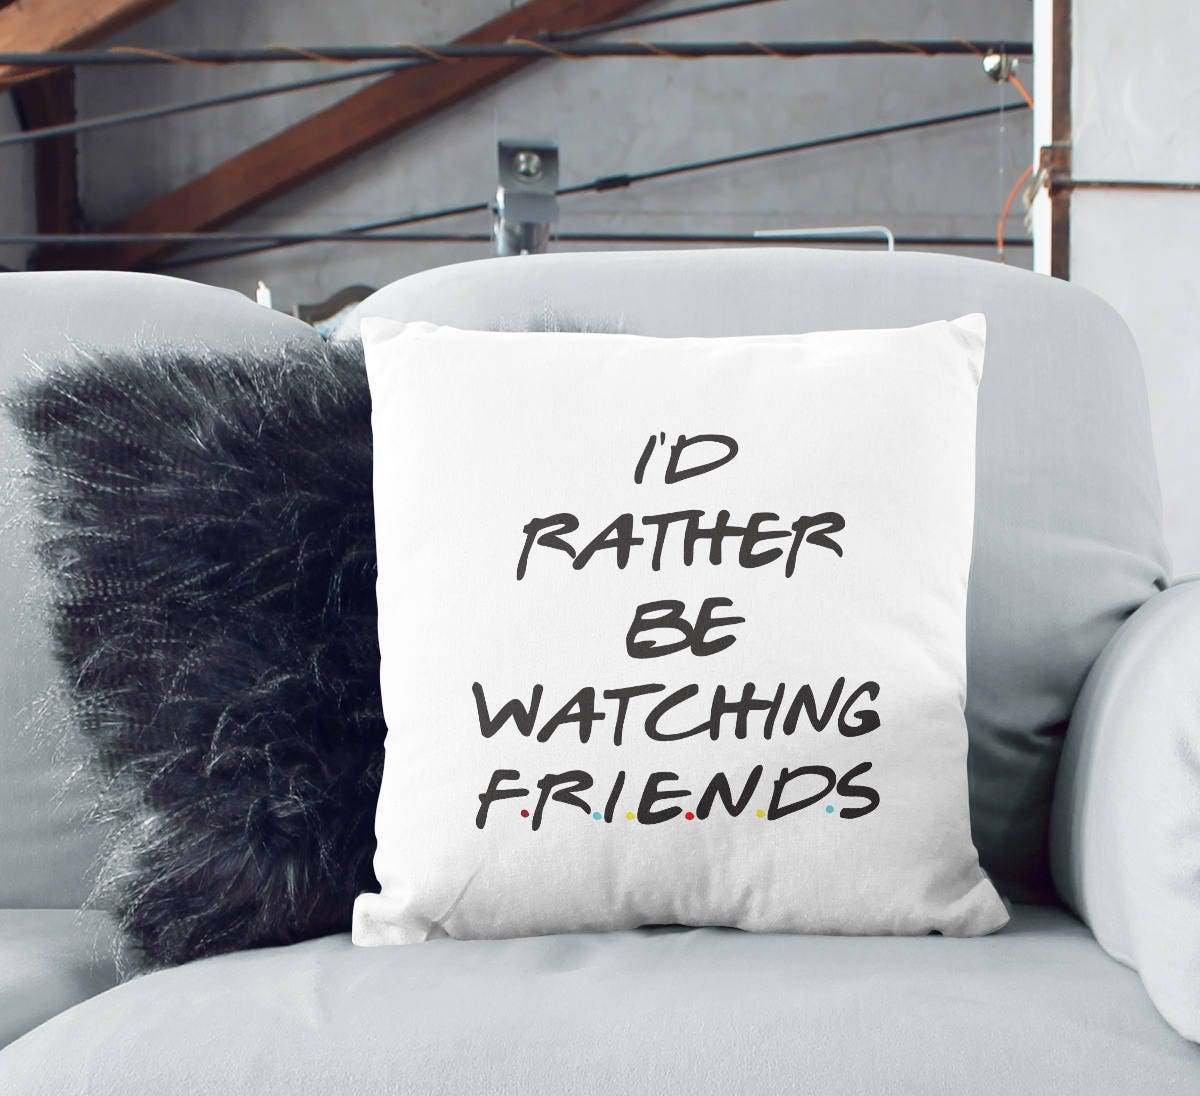 Canadian Inspired Home Decor Canada Pillow Via Etsy: Friends Throw Pillow Designer Home Decor If Rather Be